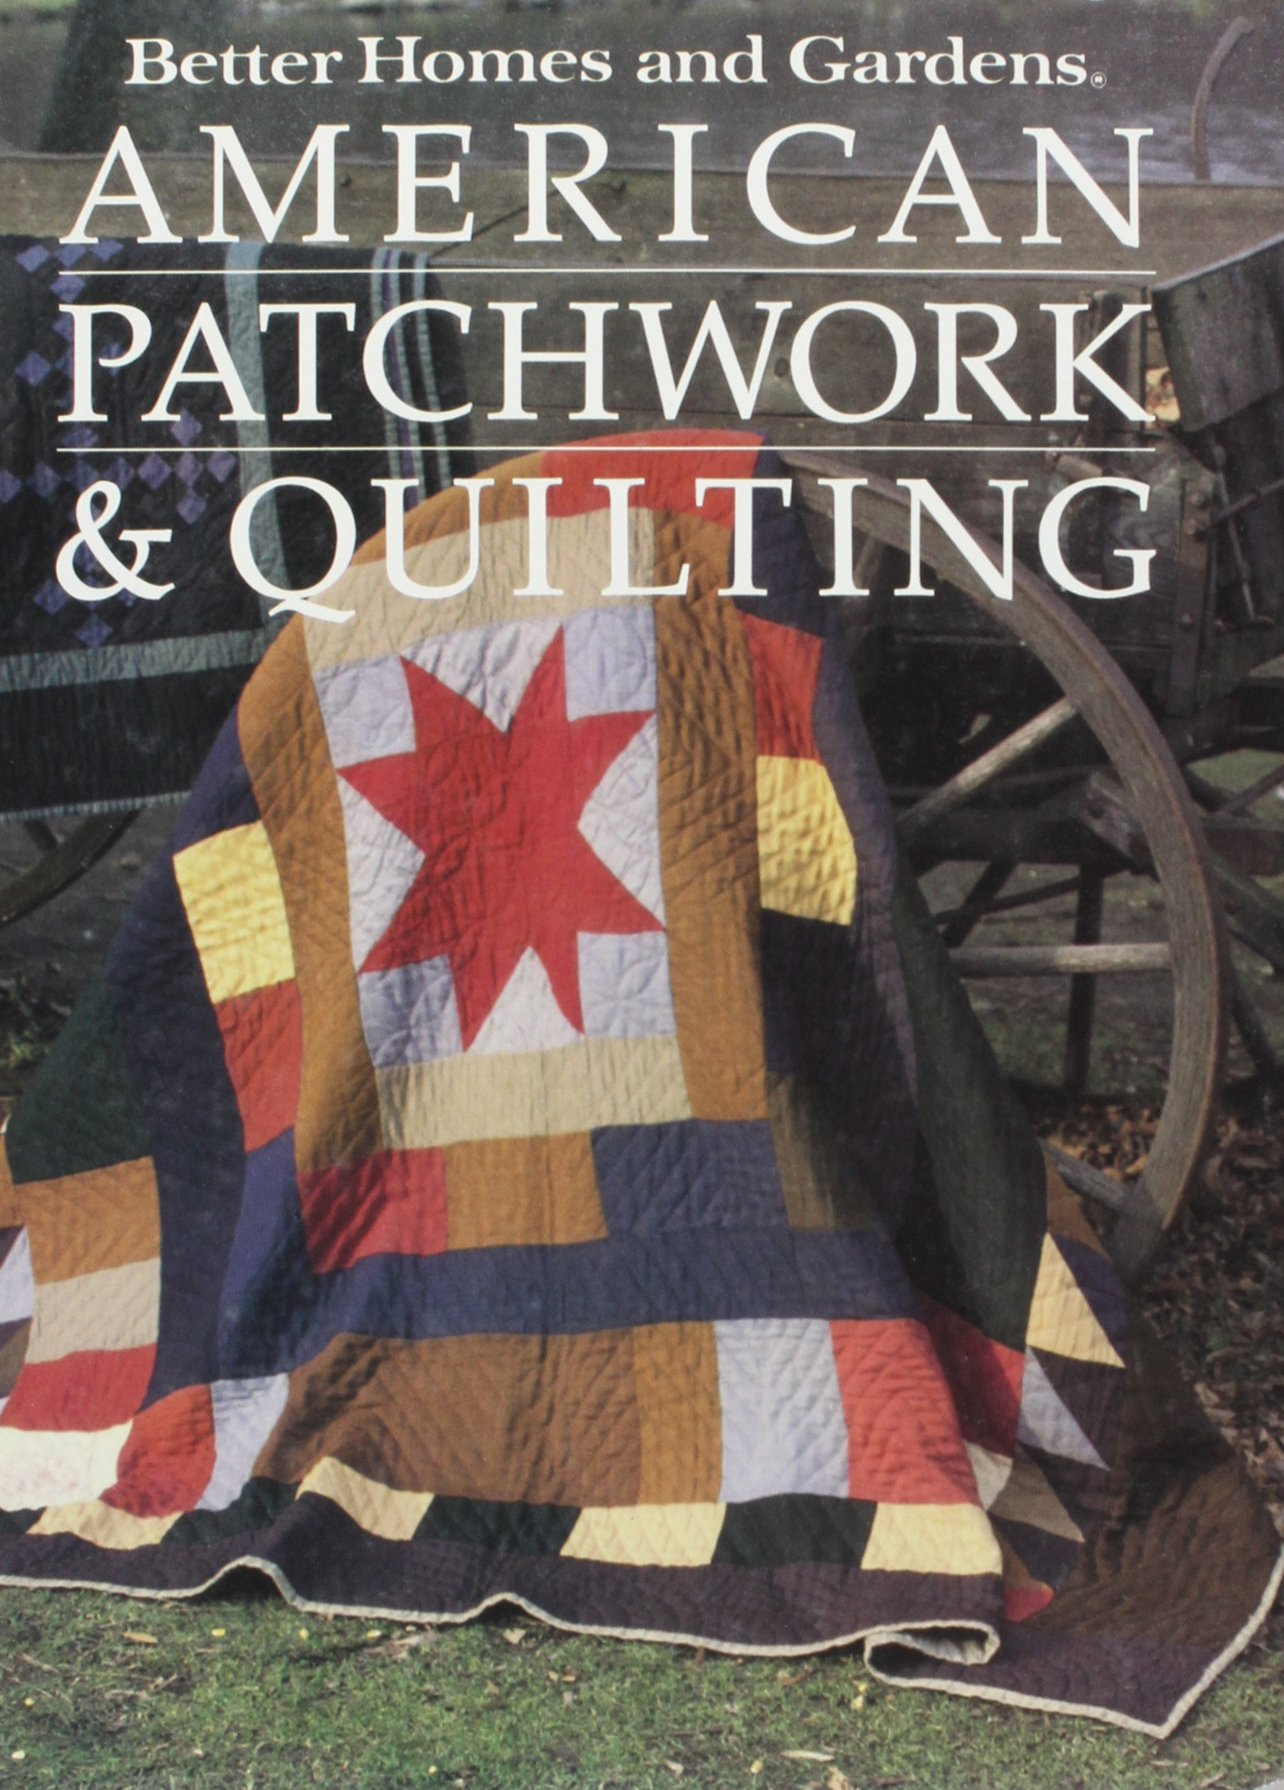 Better Homes and Gardens American Patchwork and Quilting: Gerald M ... : better homes and gardens quilting - Adamdwight.com